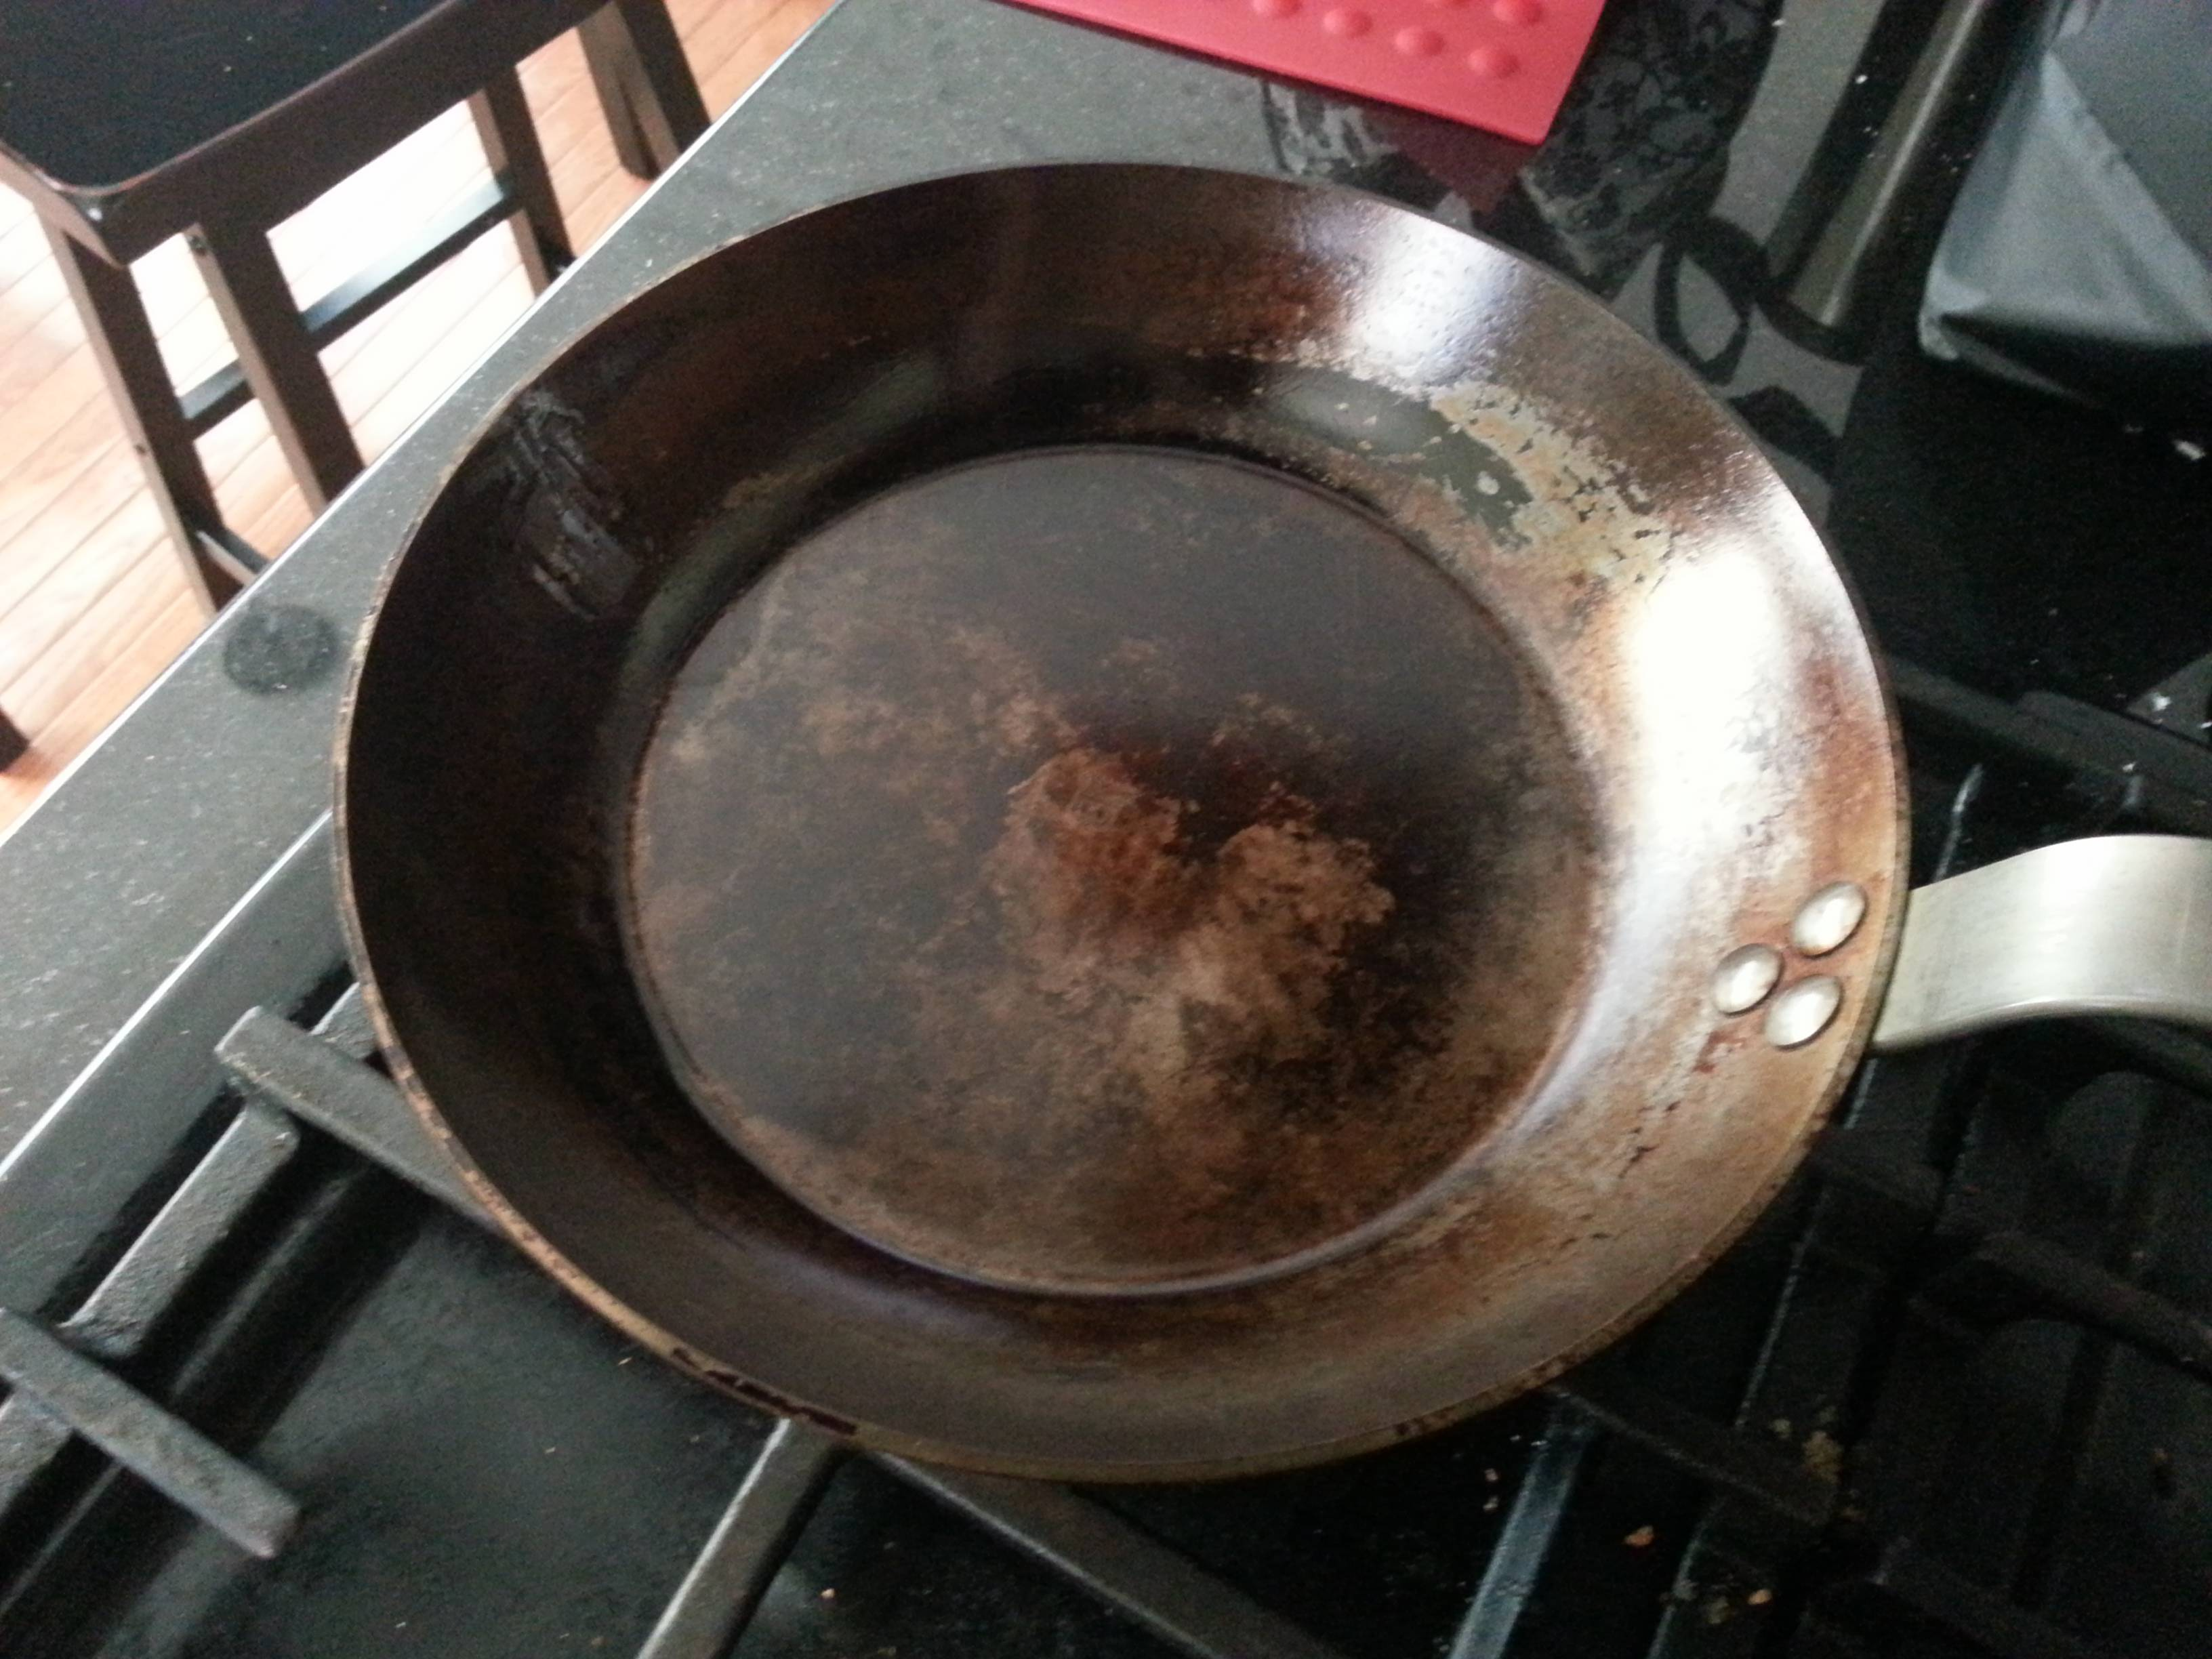 frying pan is there